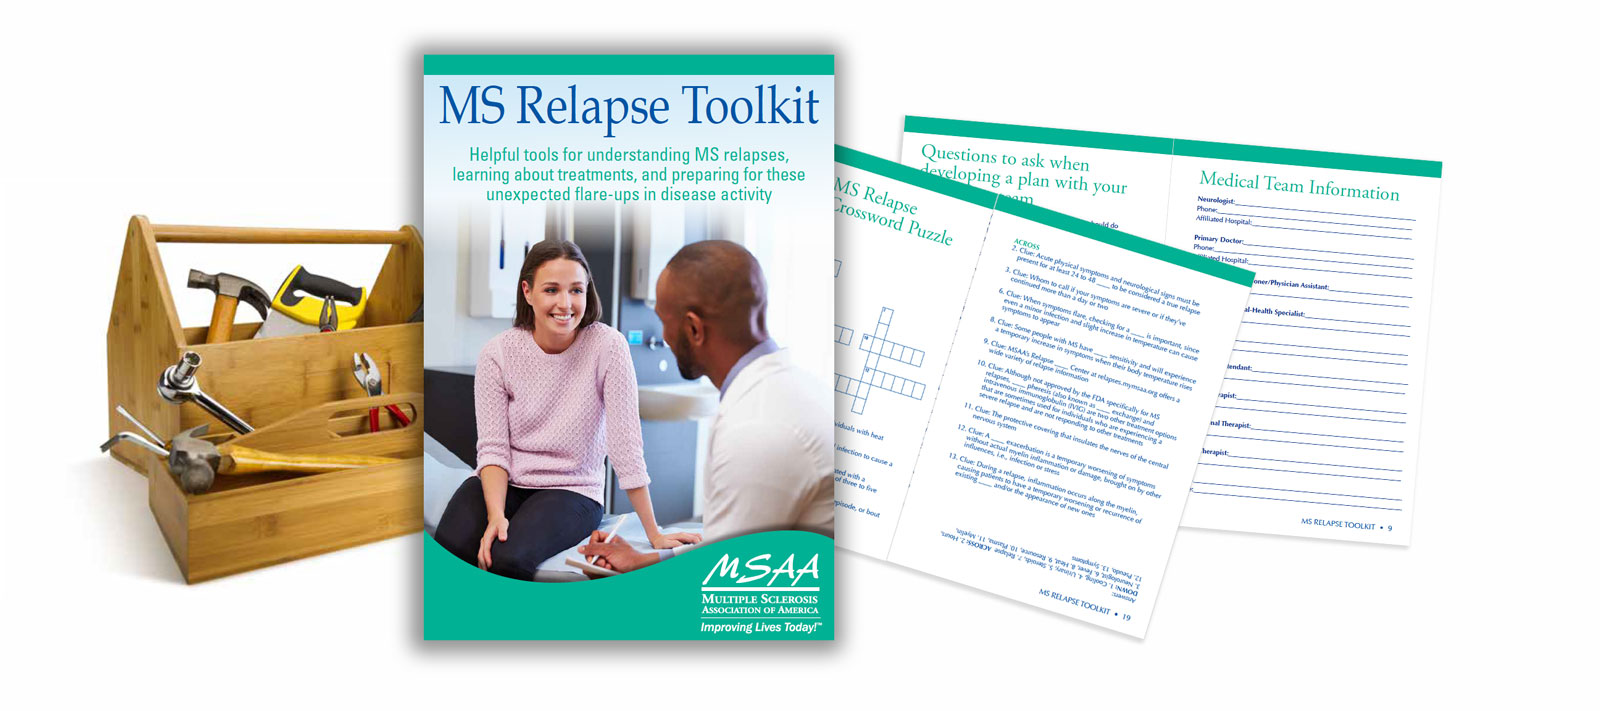 MS Relapse Toolkit - a published resource from MSAA